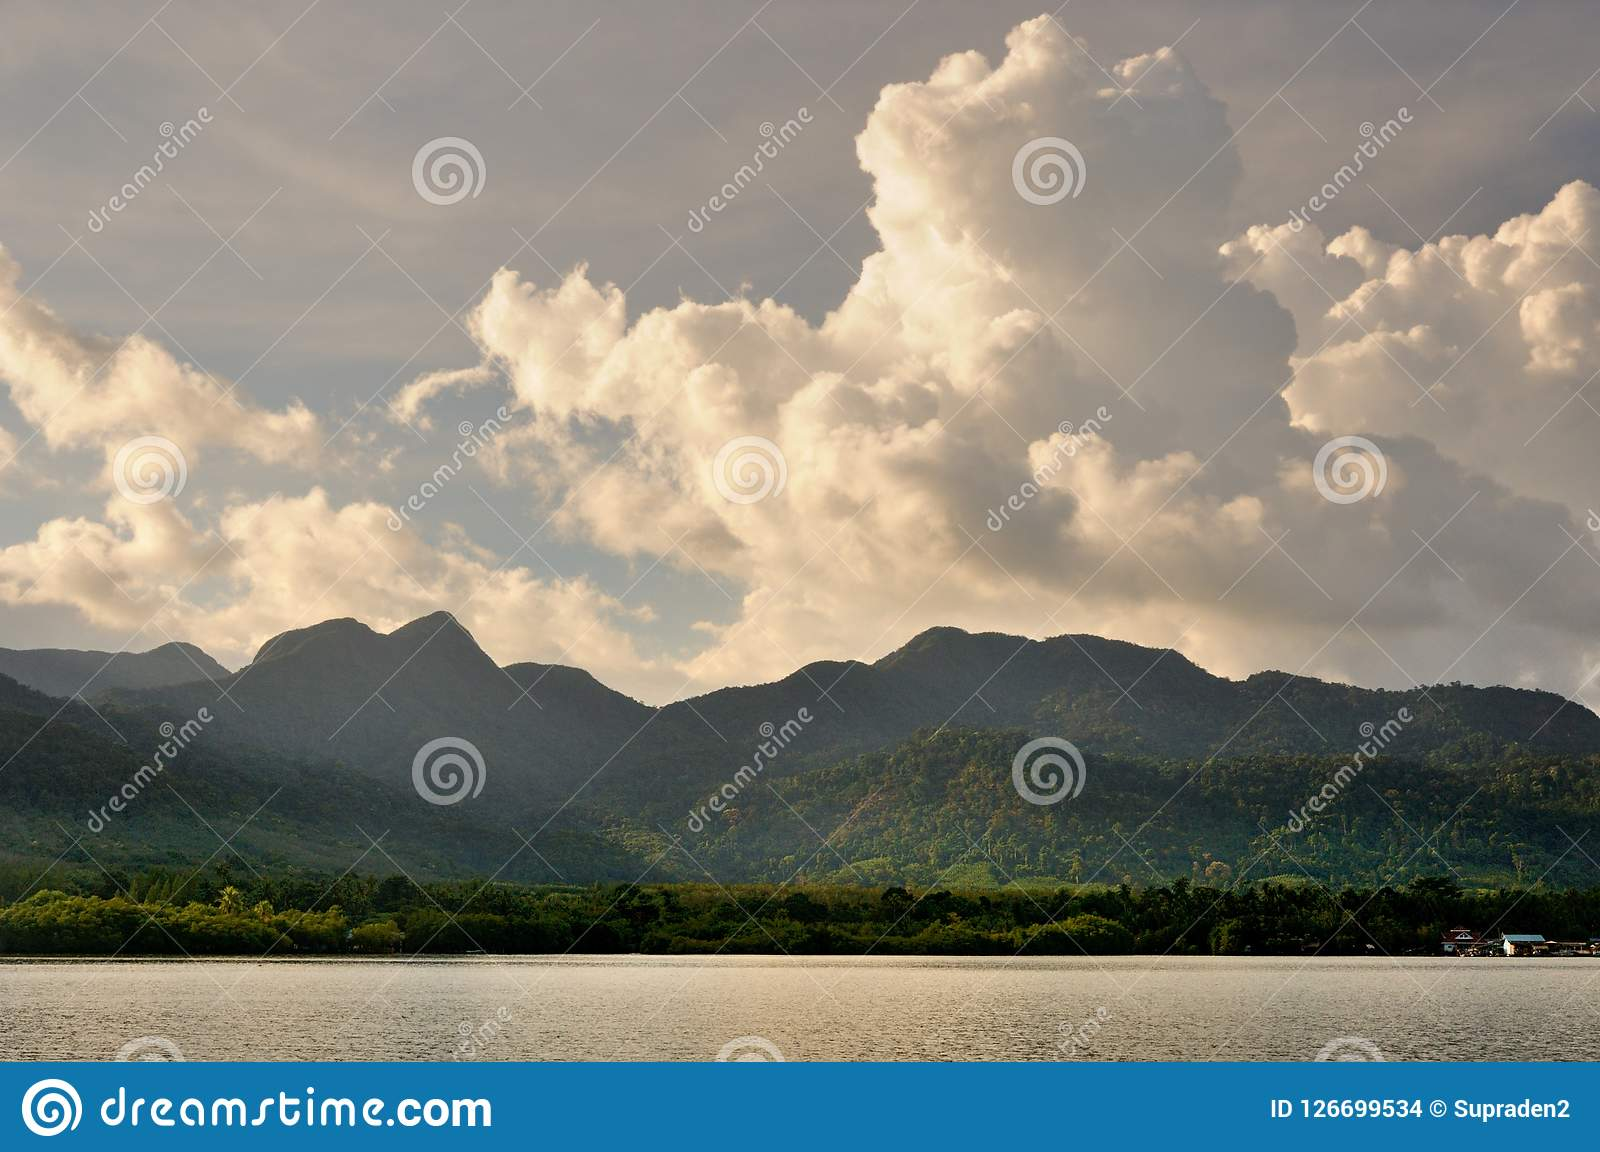 Cumulus clouds in sunset sky over Koh Chang island, Thailand.